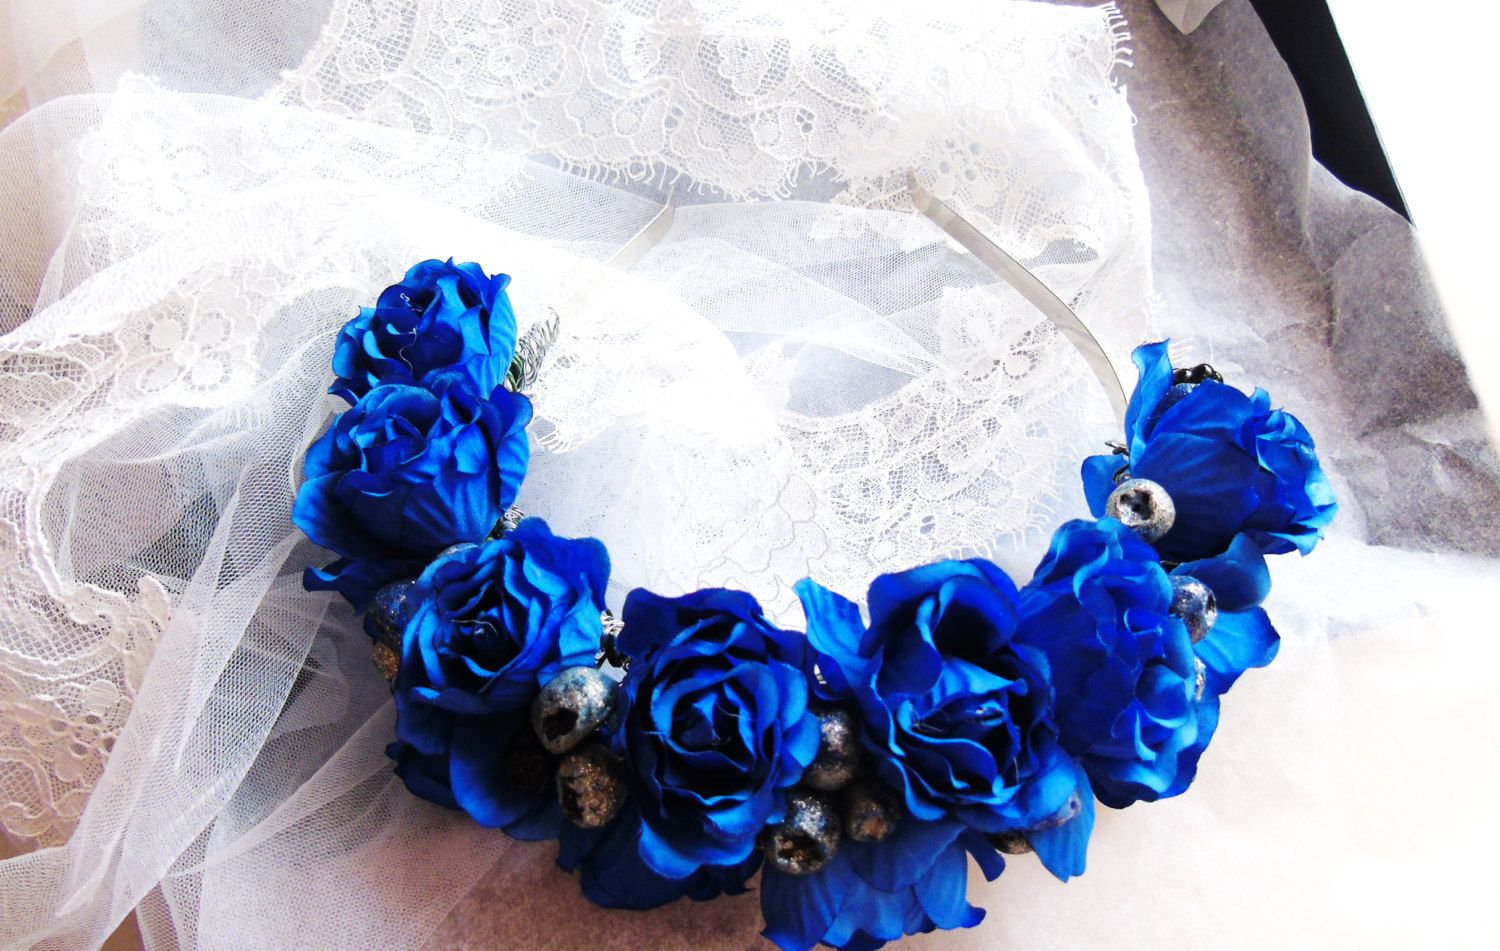 Blue roses flower bridal flower crown floral wedding crown wedding blue roses flower bridal flower crown floral wedding crown wedding flower heapiece wedding flower crown boho wedding 2500 usd by barbarisaccessories izmirmasajfo